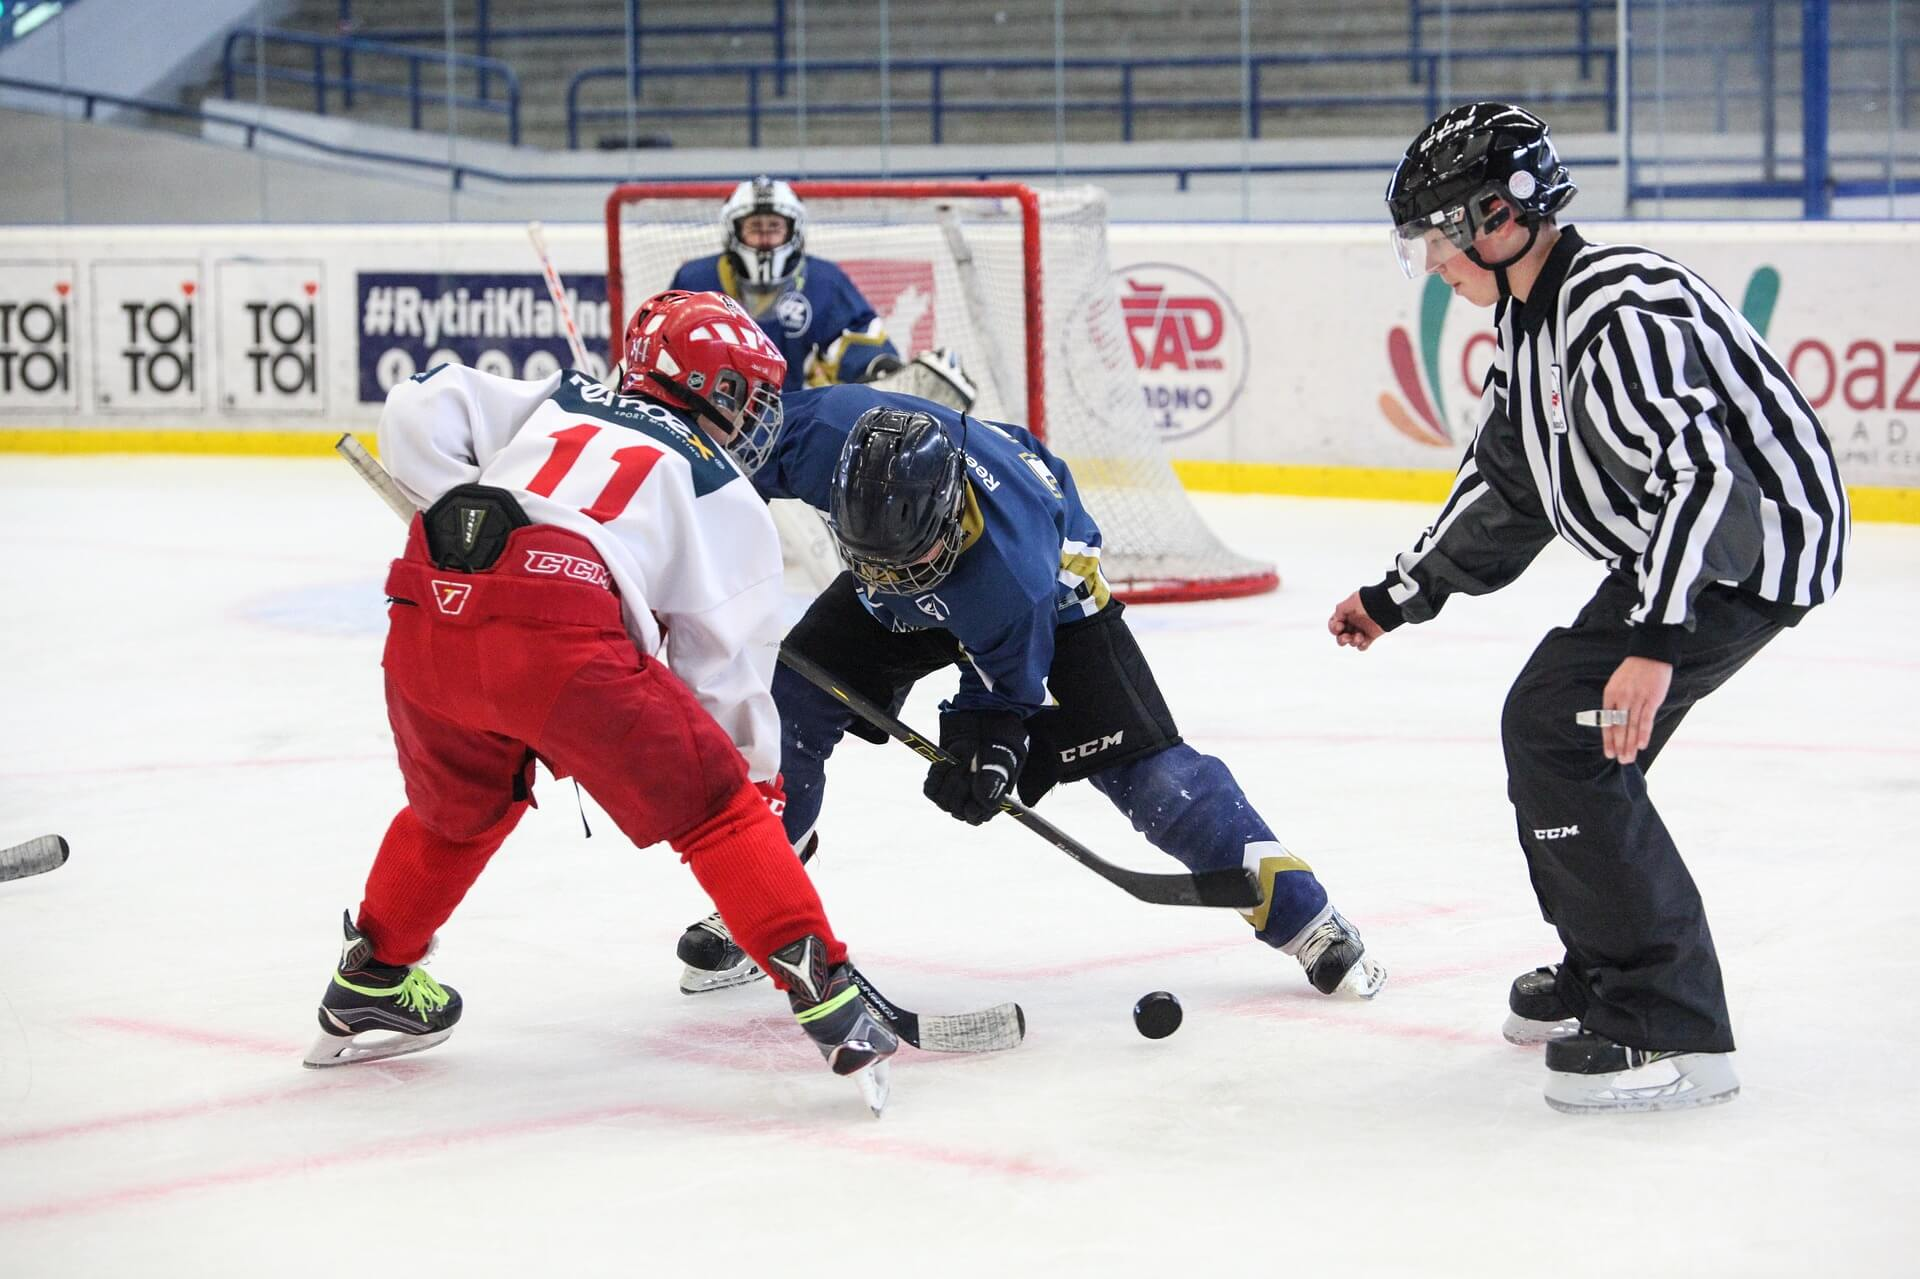 image of hockey players playing in the rink